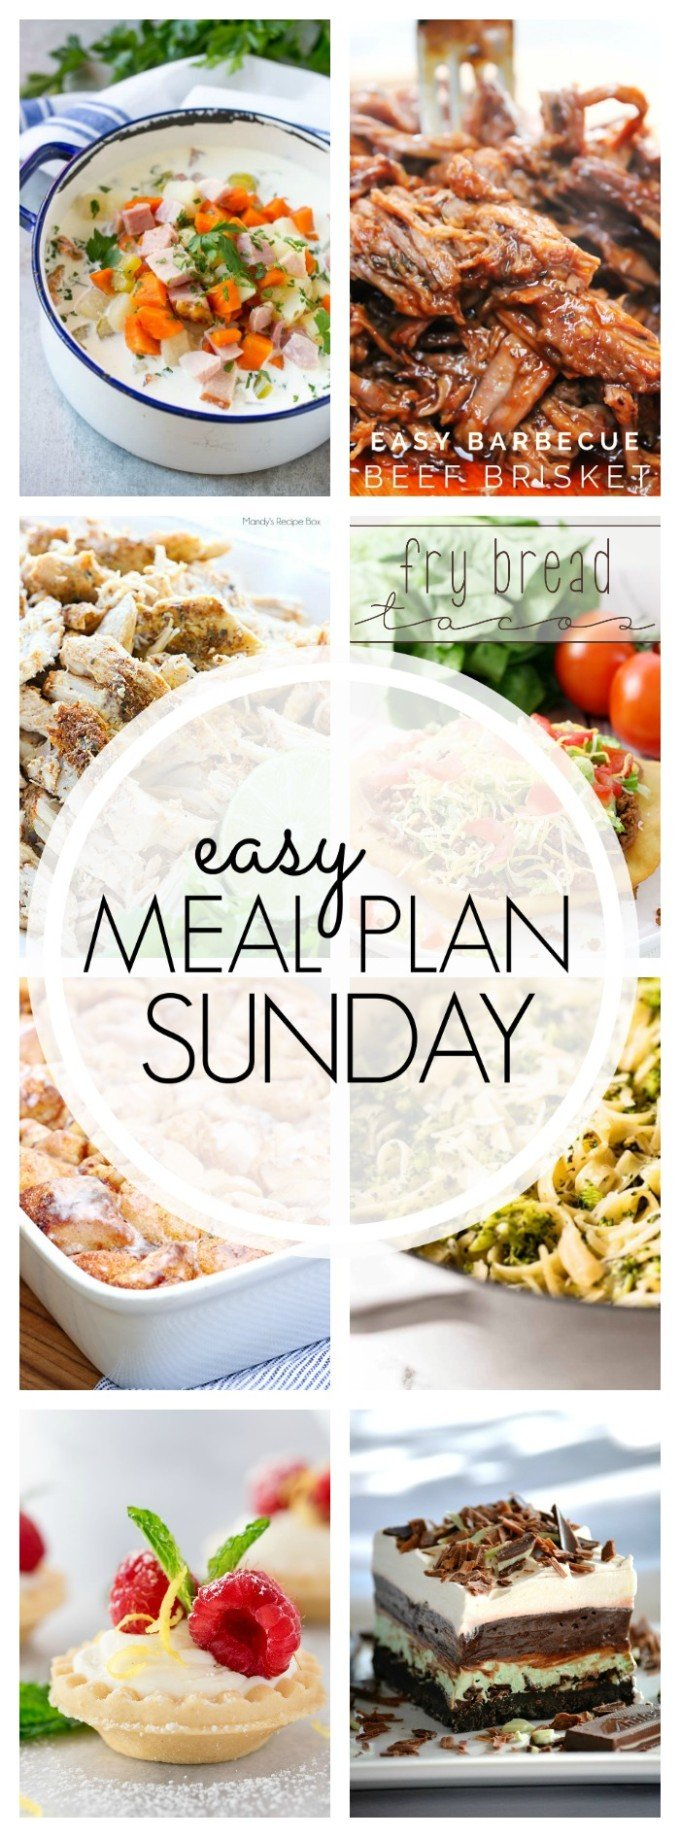 Easy Meal Plan week 89 - consists of 7 delicious dinners, 2 desserts, and a breakfast idea!!